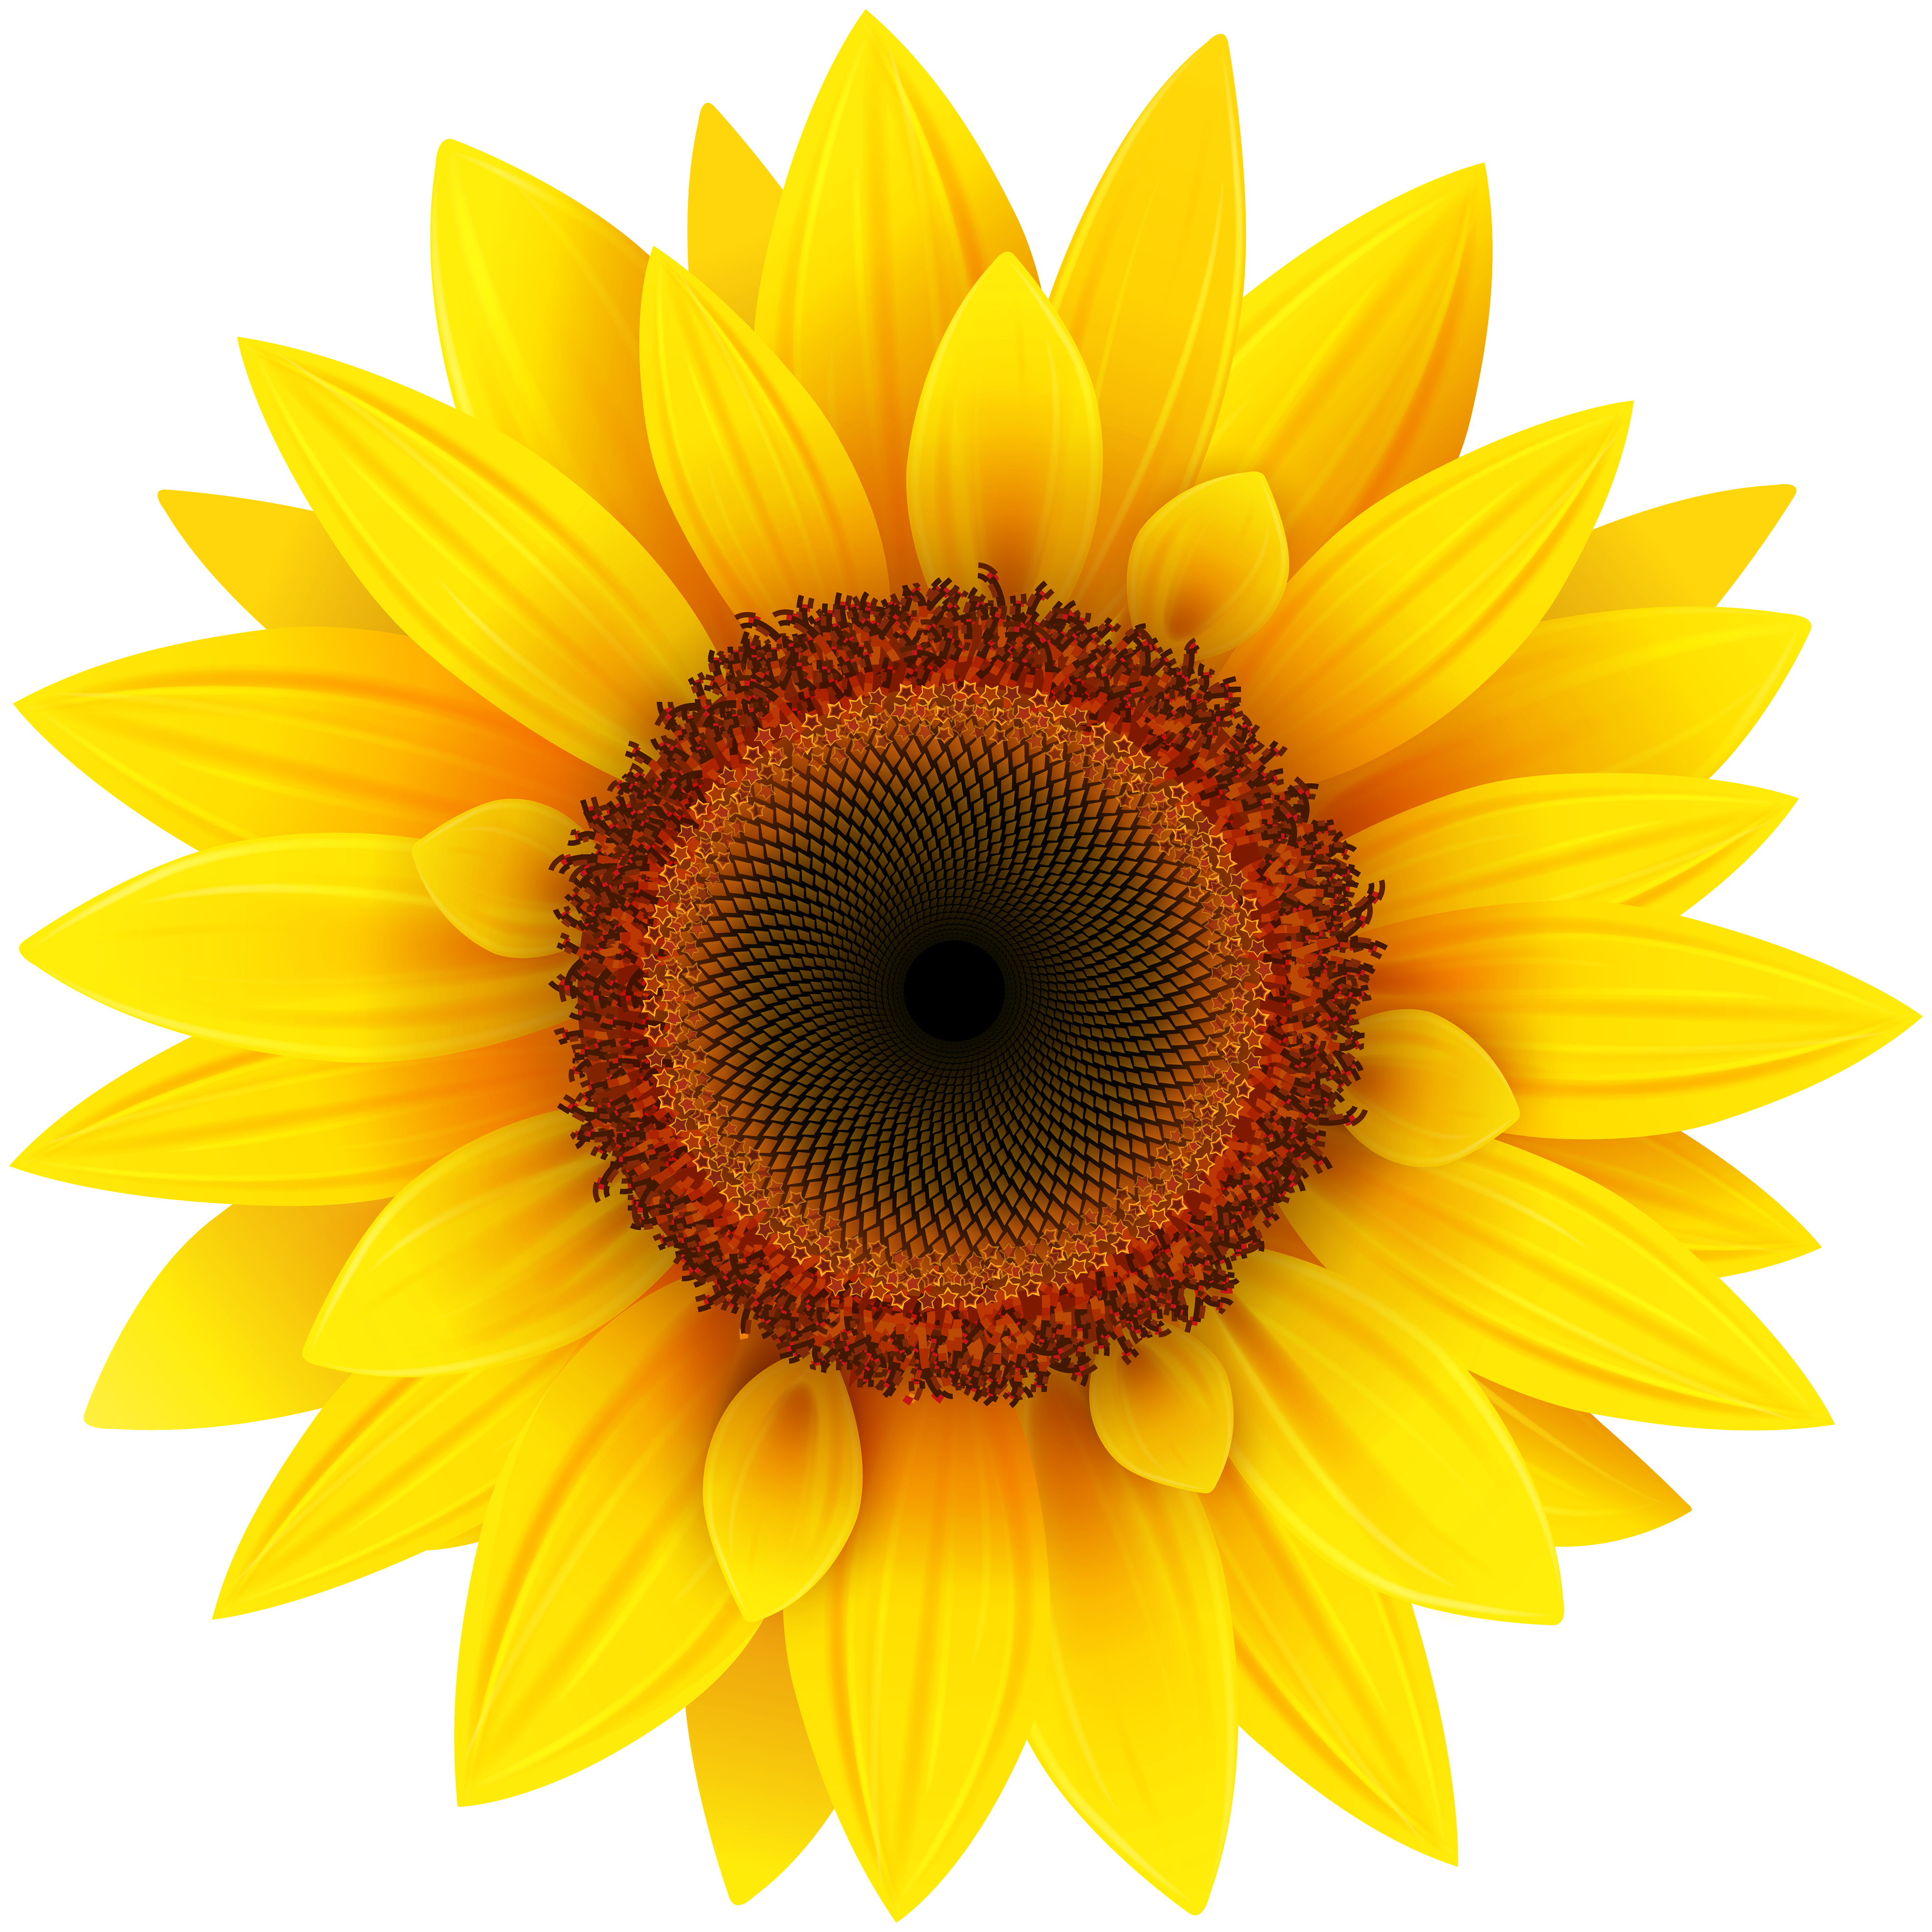 Cute sunflower png. Clipart picture gallery yopriceville